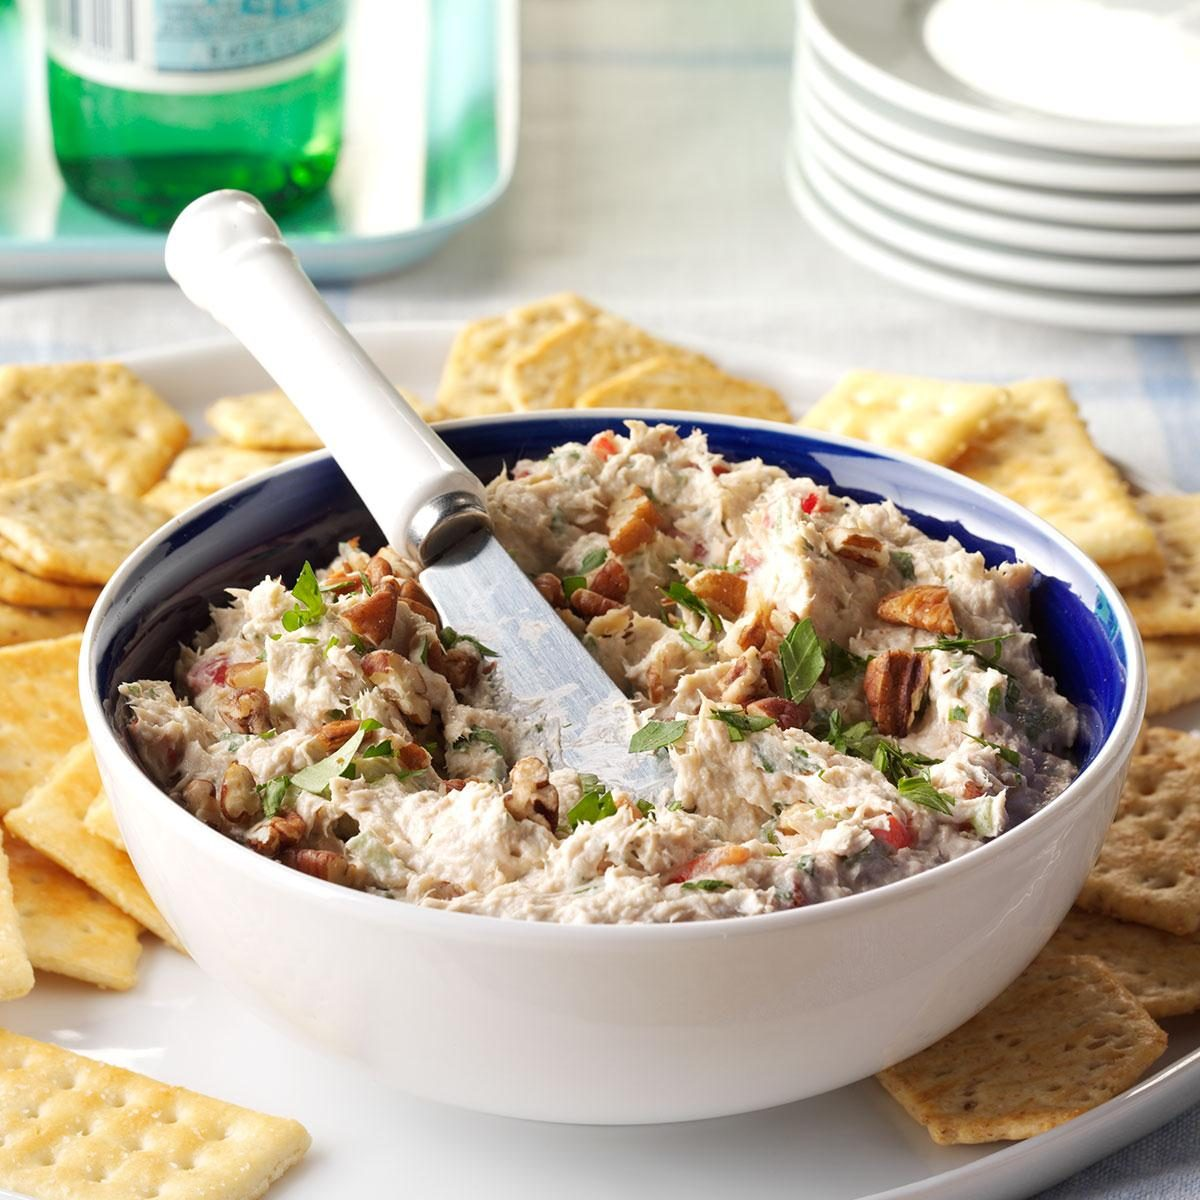 Party Food Spread For Kids: Salmon Party Spread Recipe